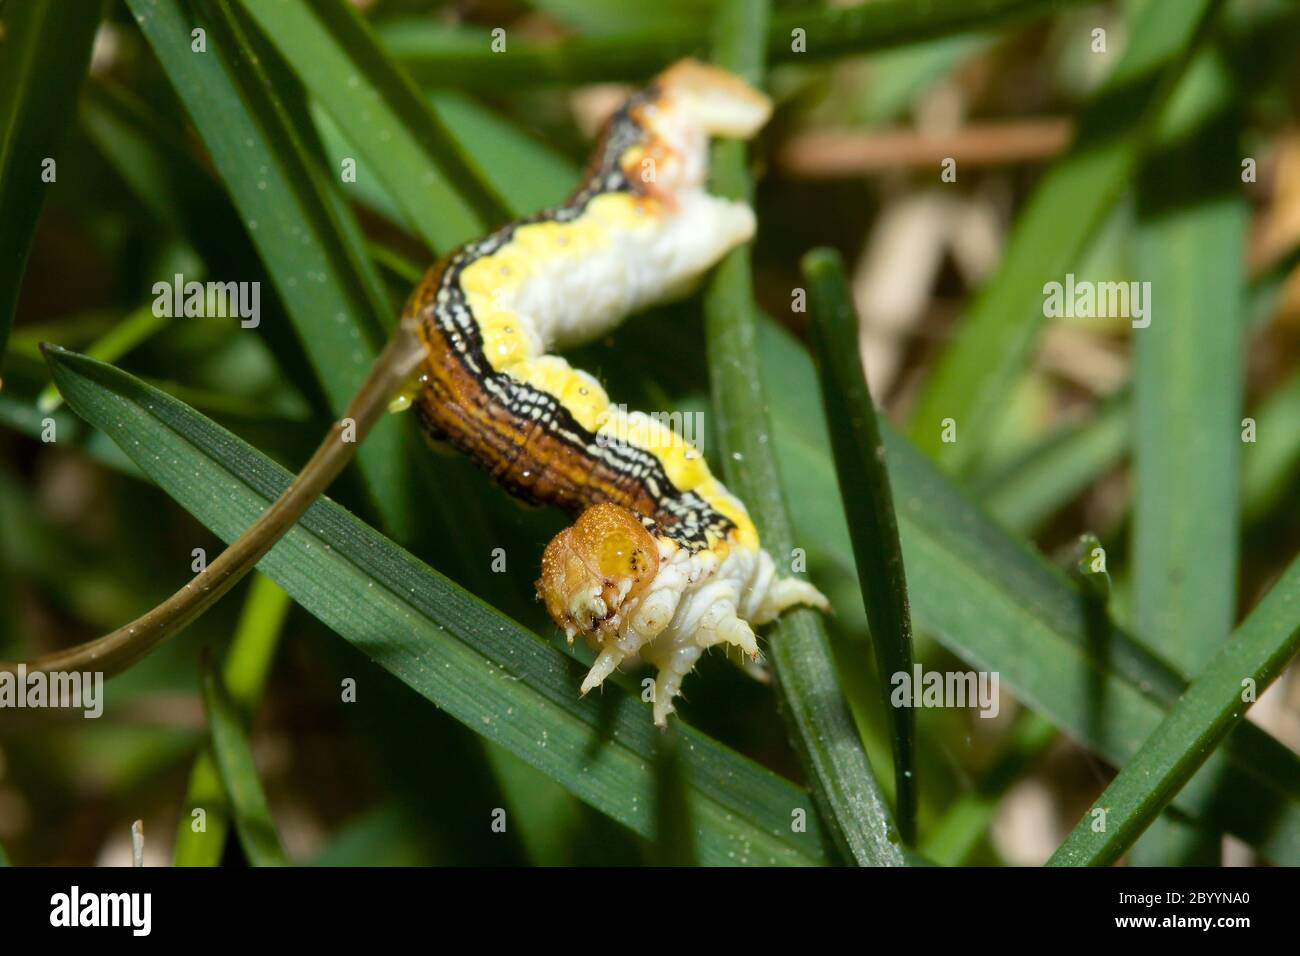 Inch Worm in the Grass Stock Photo